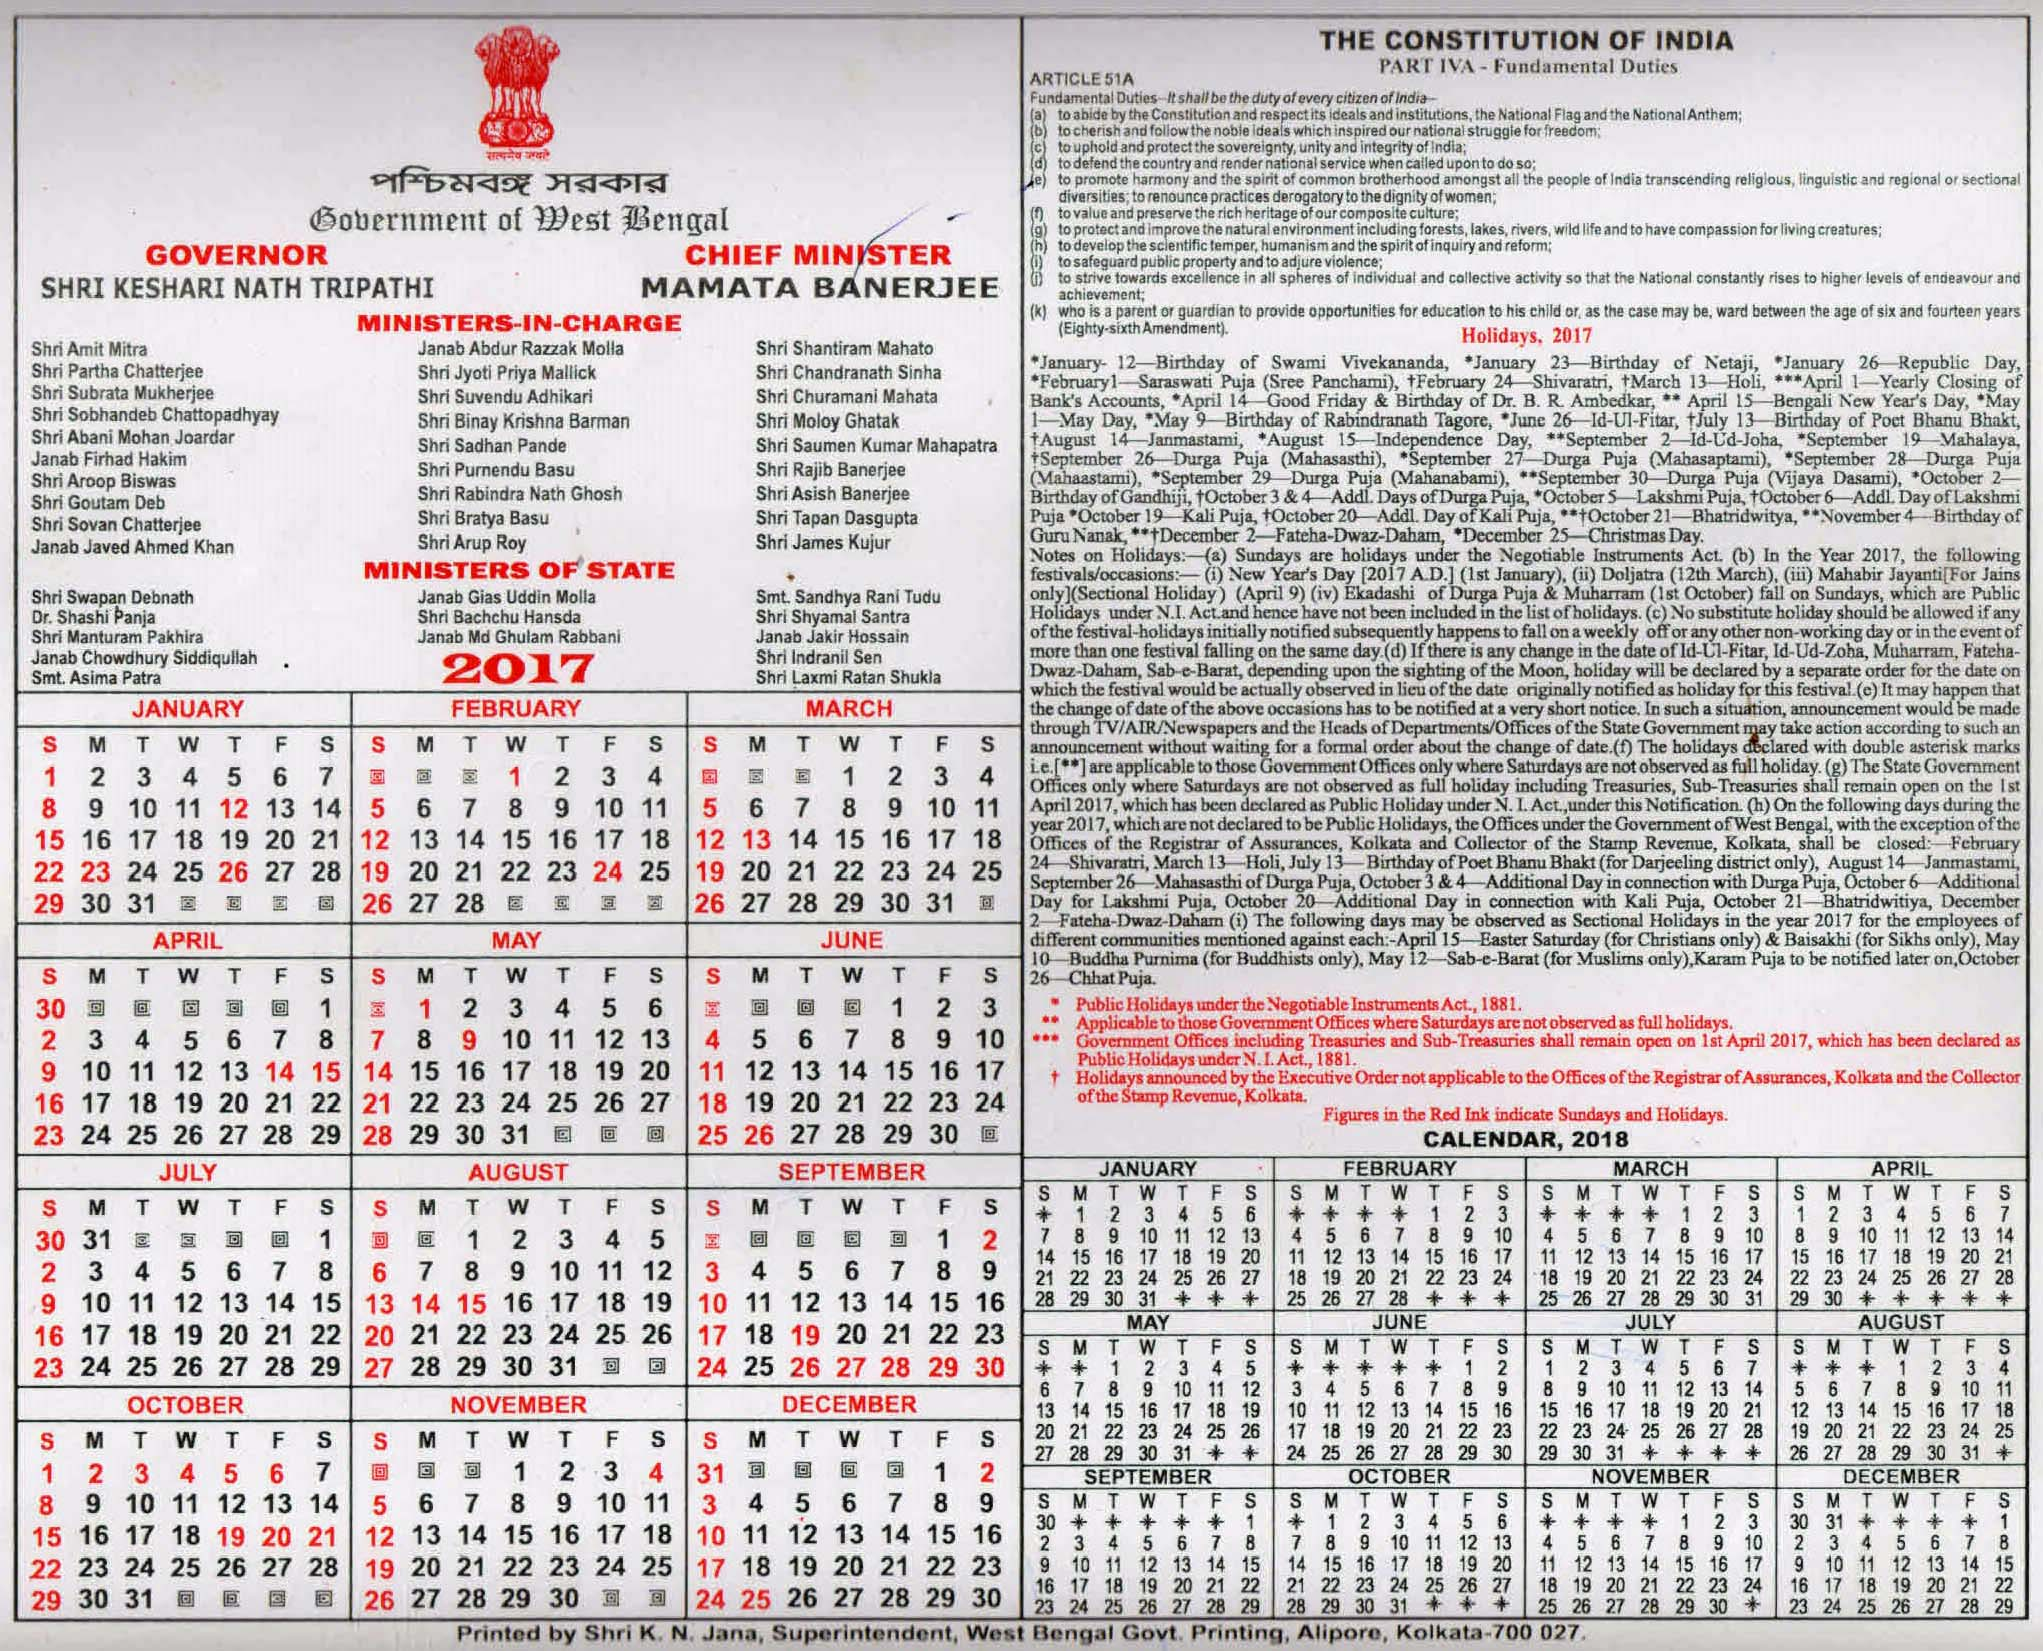 click for west bengal government calendar 2017